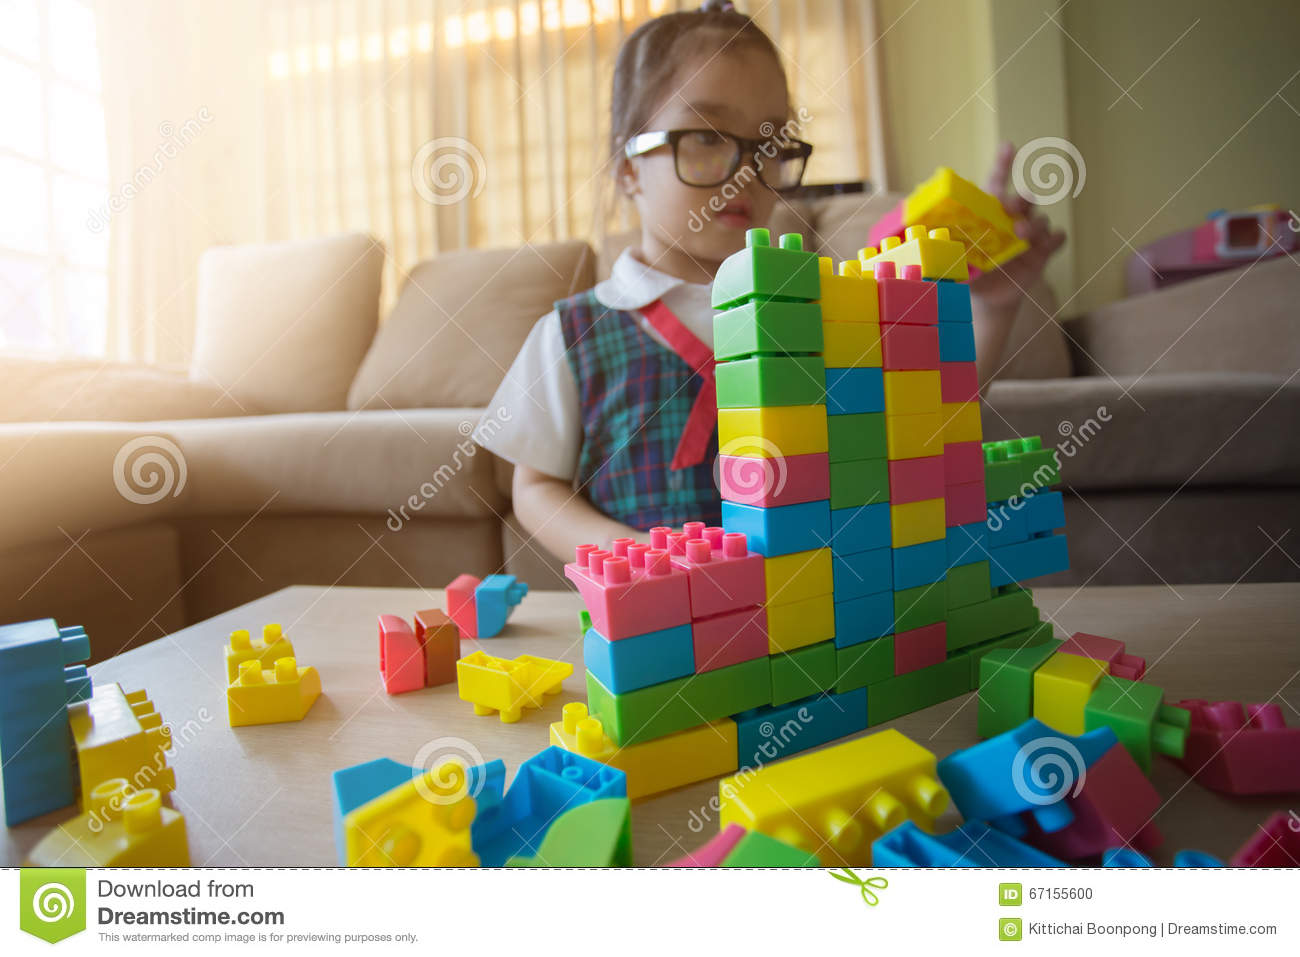 Little girl in a colorful shirt playing with construction toy blocks building a tower